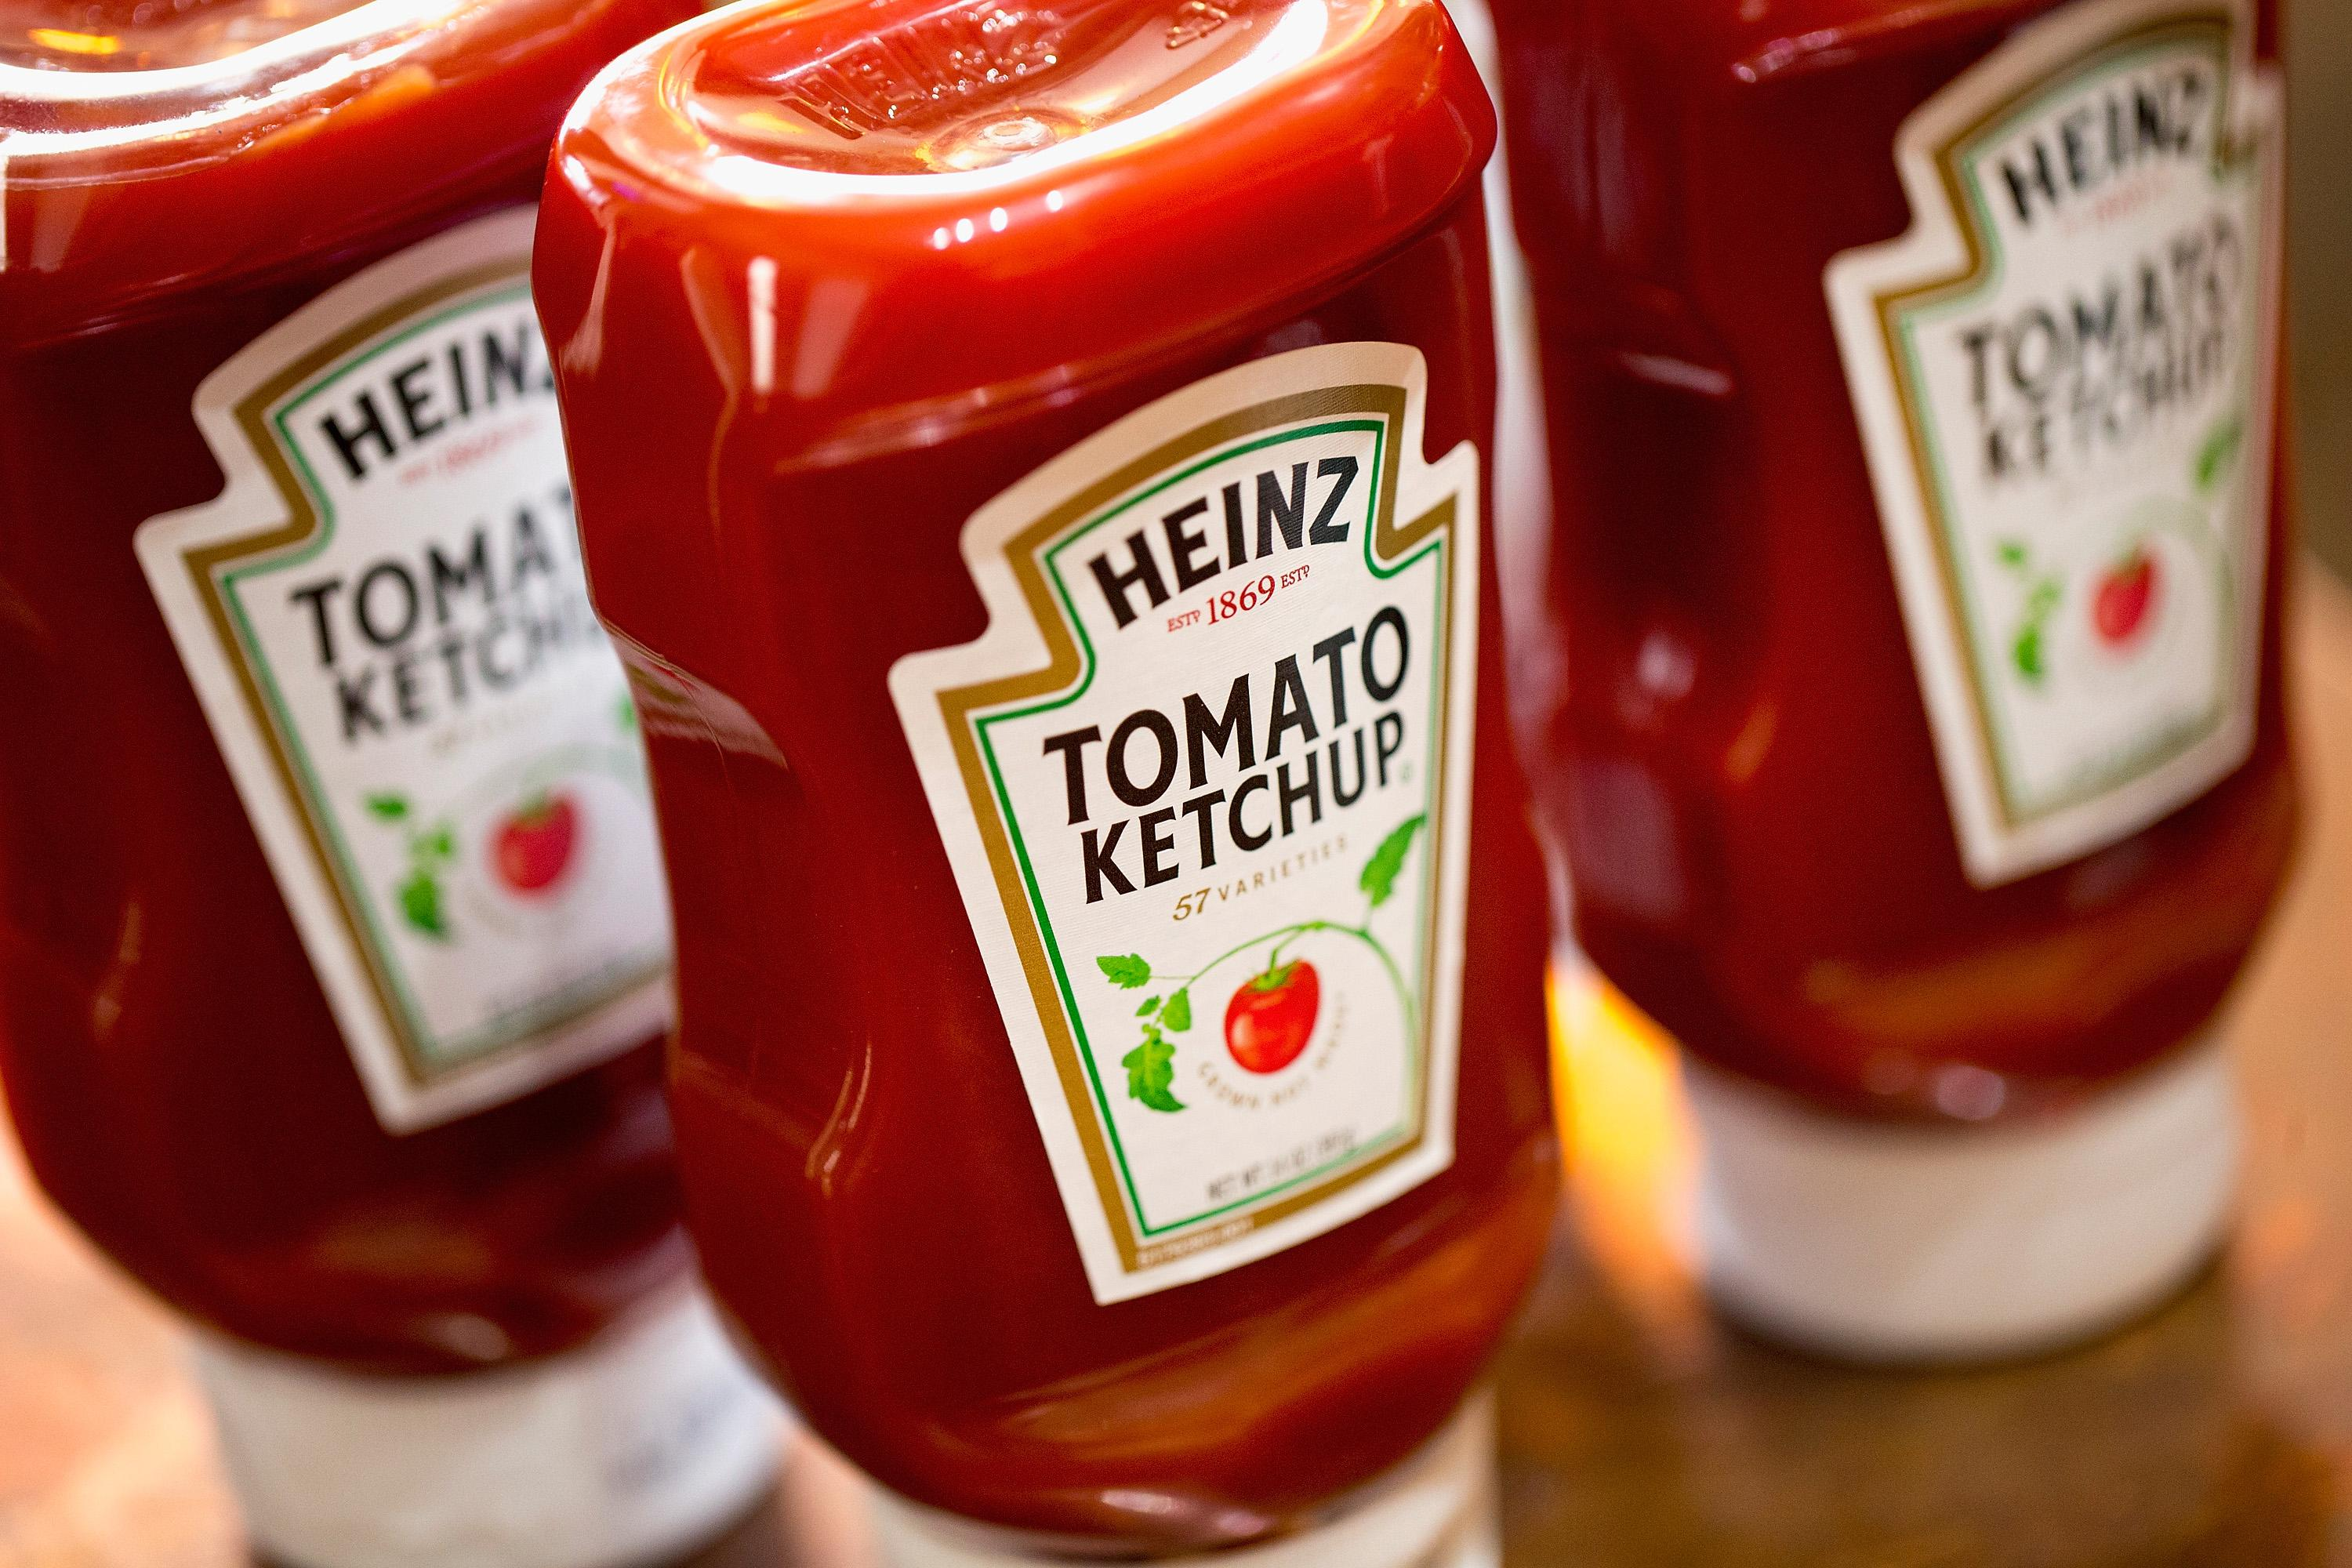 Woman's 'Crohn's Disease' Was Actually Perforation From 'Tomato Ketchup Sachet'